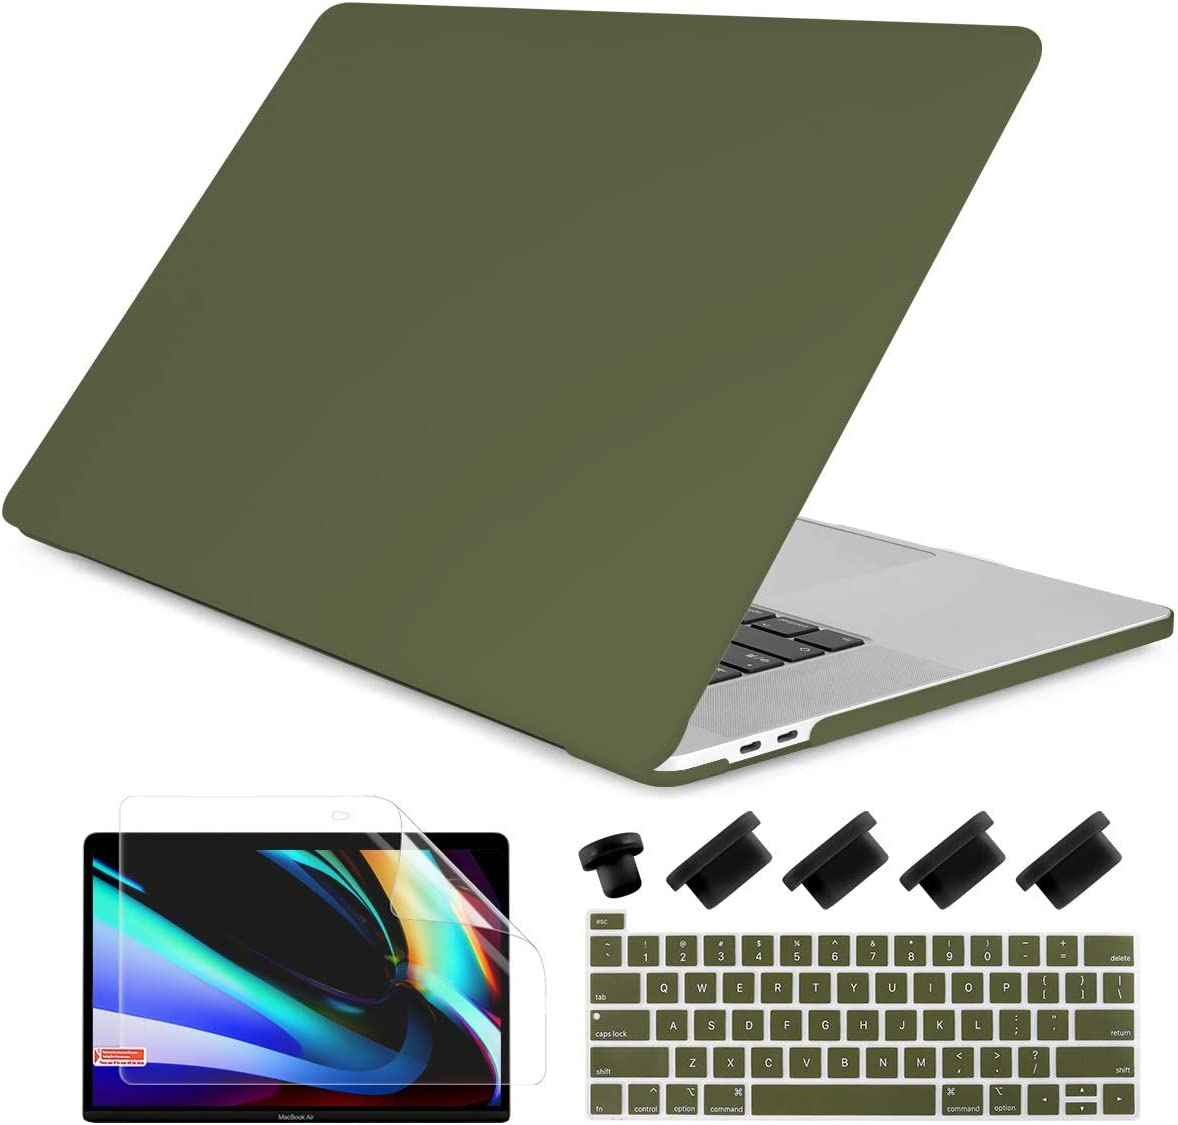 Dongke MacBook Pro 13 2020 Case Model A2251/A2289, Plastic Smooth Frosted Hard Shell Cover Case for MacBook Pro 13 inch with Retina Display and Touch Bar Fits Touch ID, Army Green